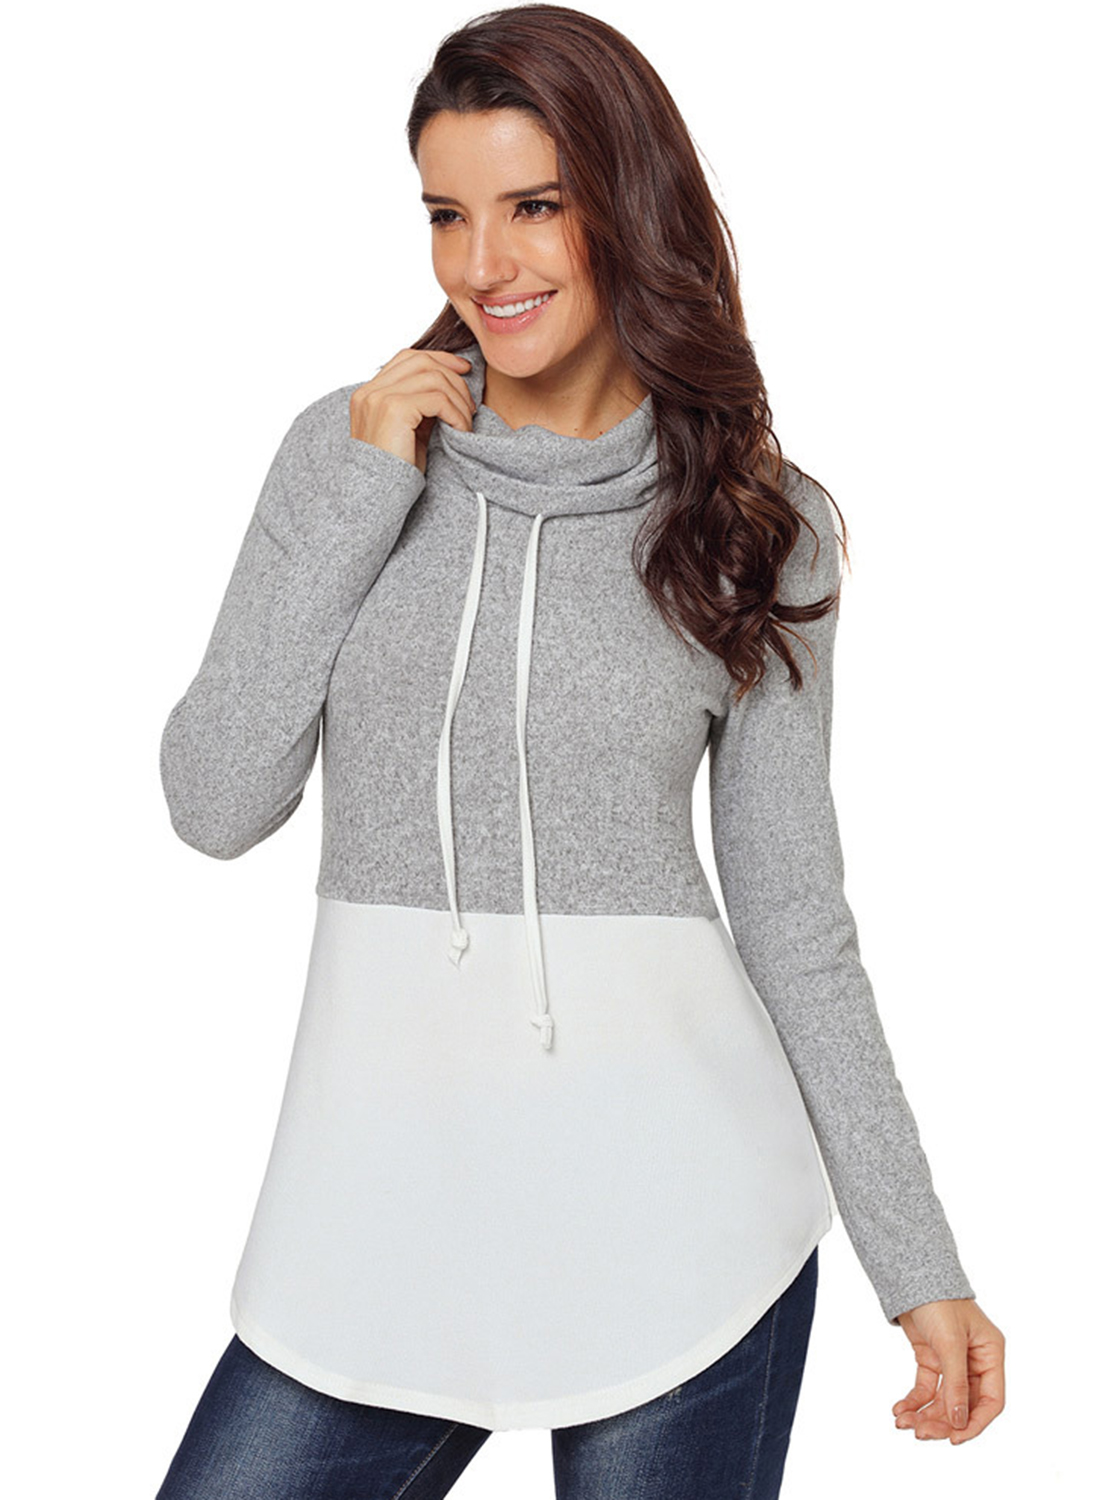 White Women s High Neck Long Sleeve Color Block Loose Pullover Sweatshirt  STYLESIMO.com. Loading zoom 01af61b3d6